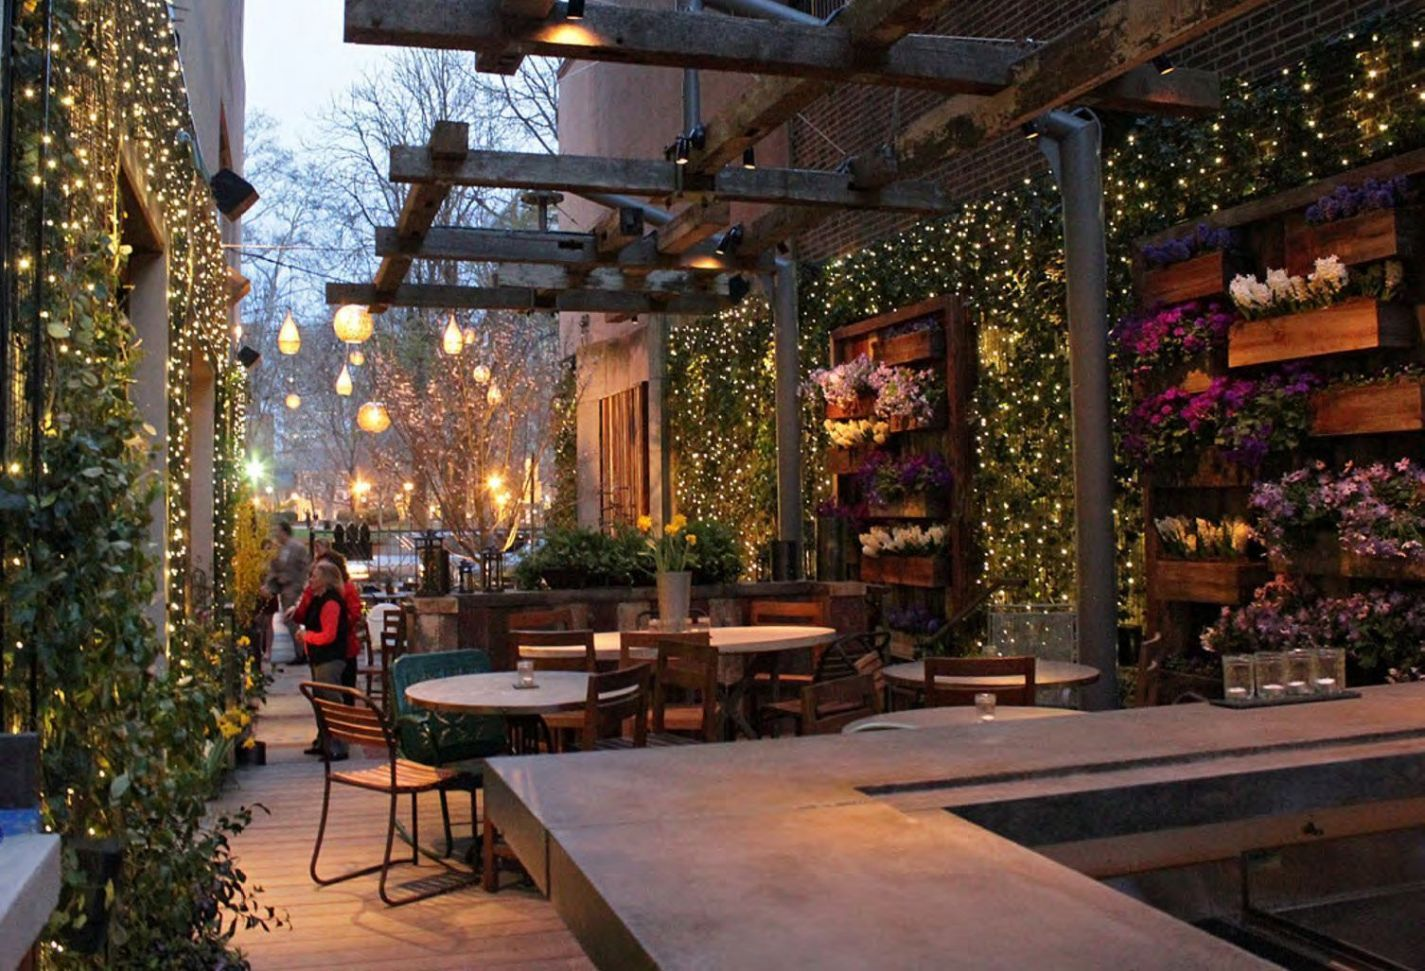 34 Awesome Beer Garden Ideas to Enjoying Your Day Beer